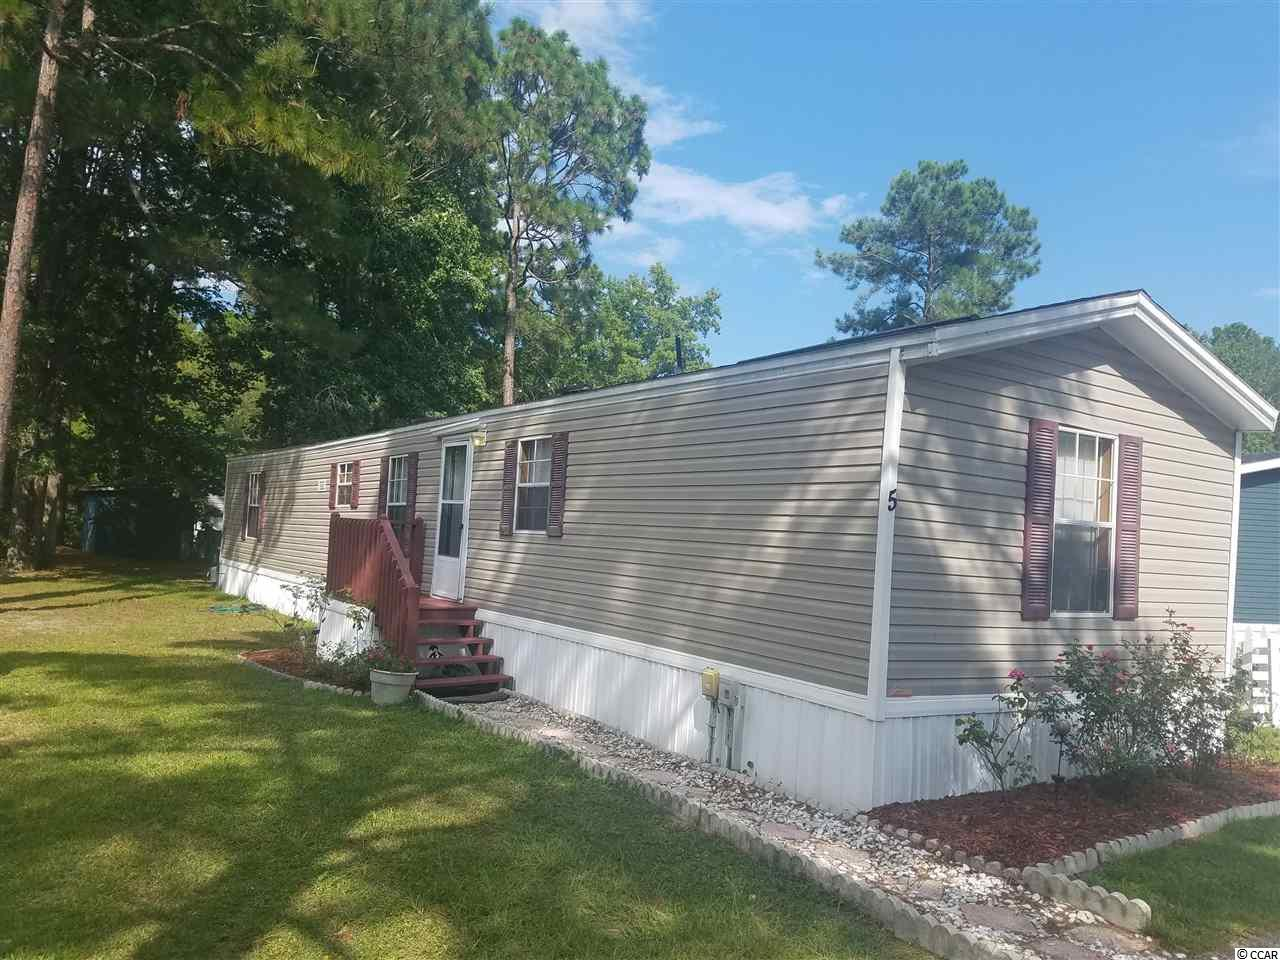 Beach living in Windjammer Village which offers a pool, community clubhouse along with basketball court and boat storage.Very well kept home, nice and clean. Close to everything Myrtle Beach has to offer. A 10 minute ride to the beach. Golf carts are welcomed here.